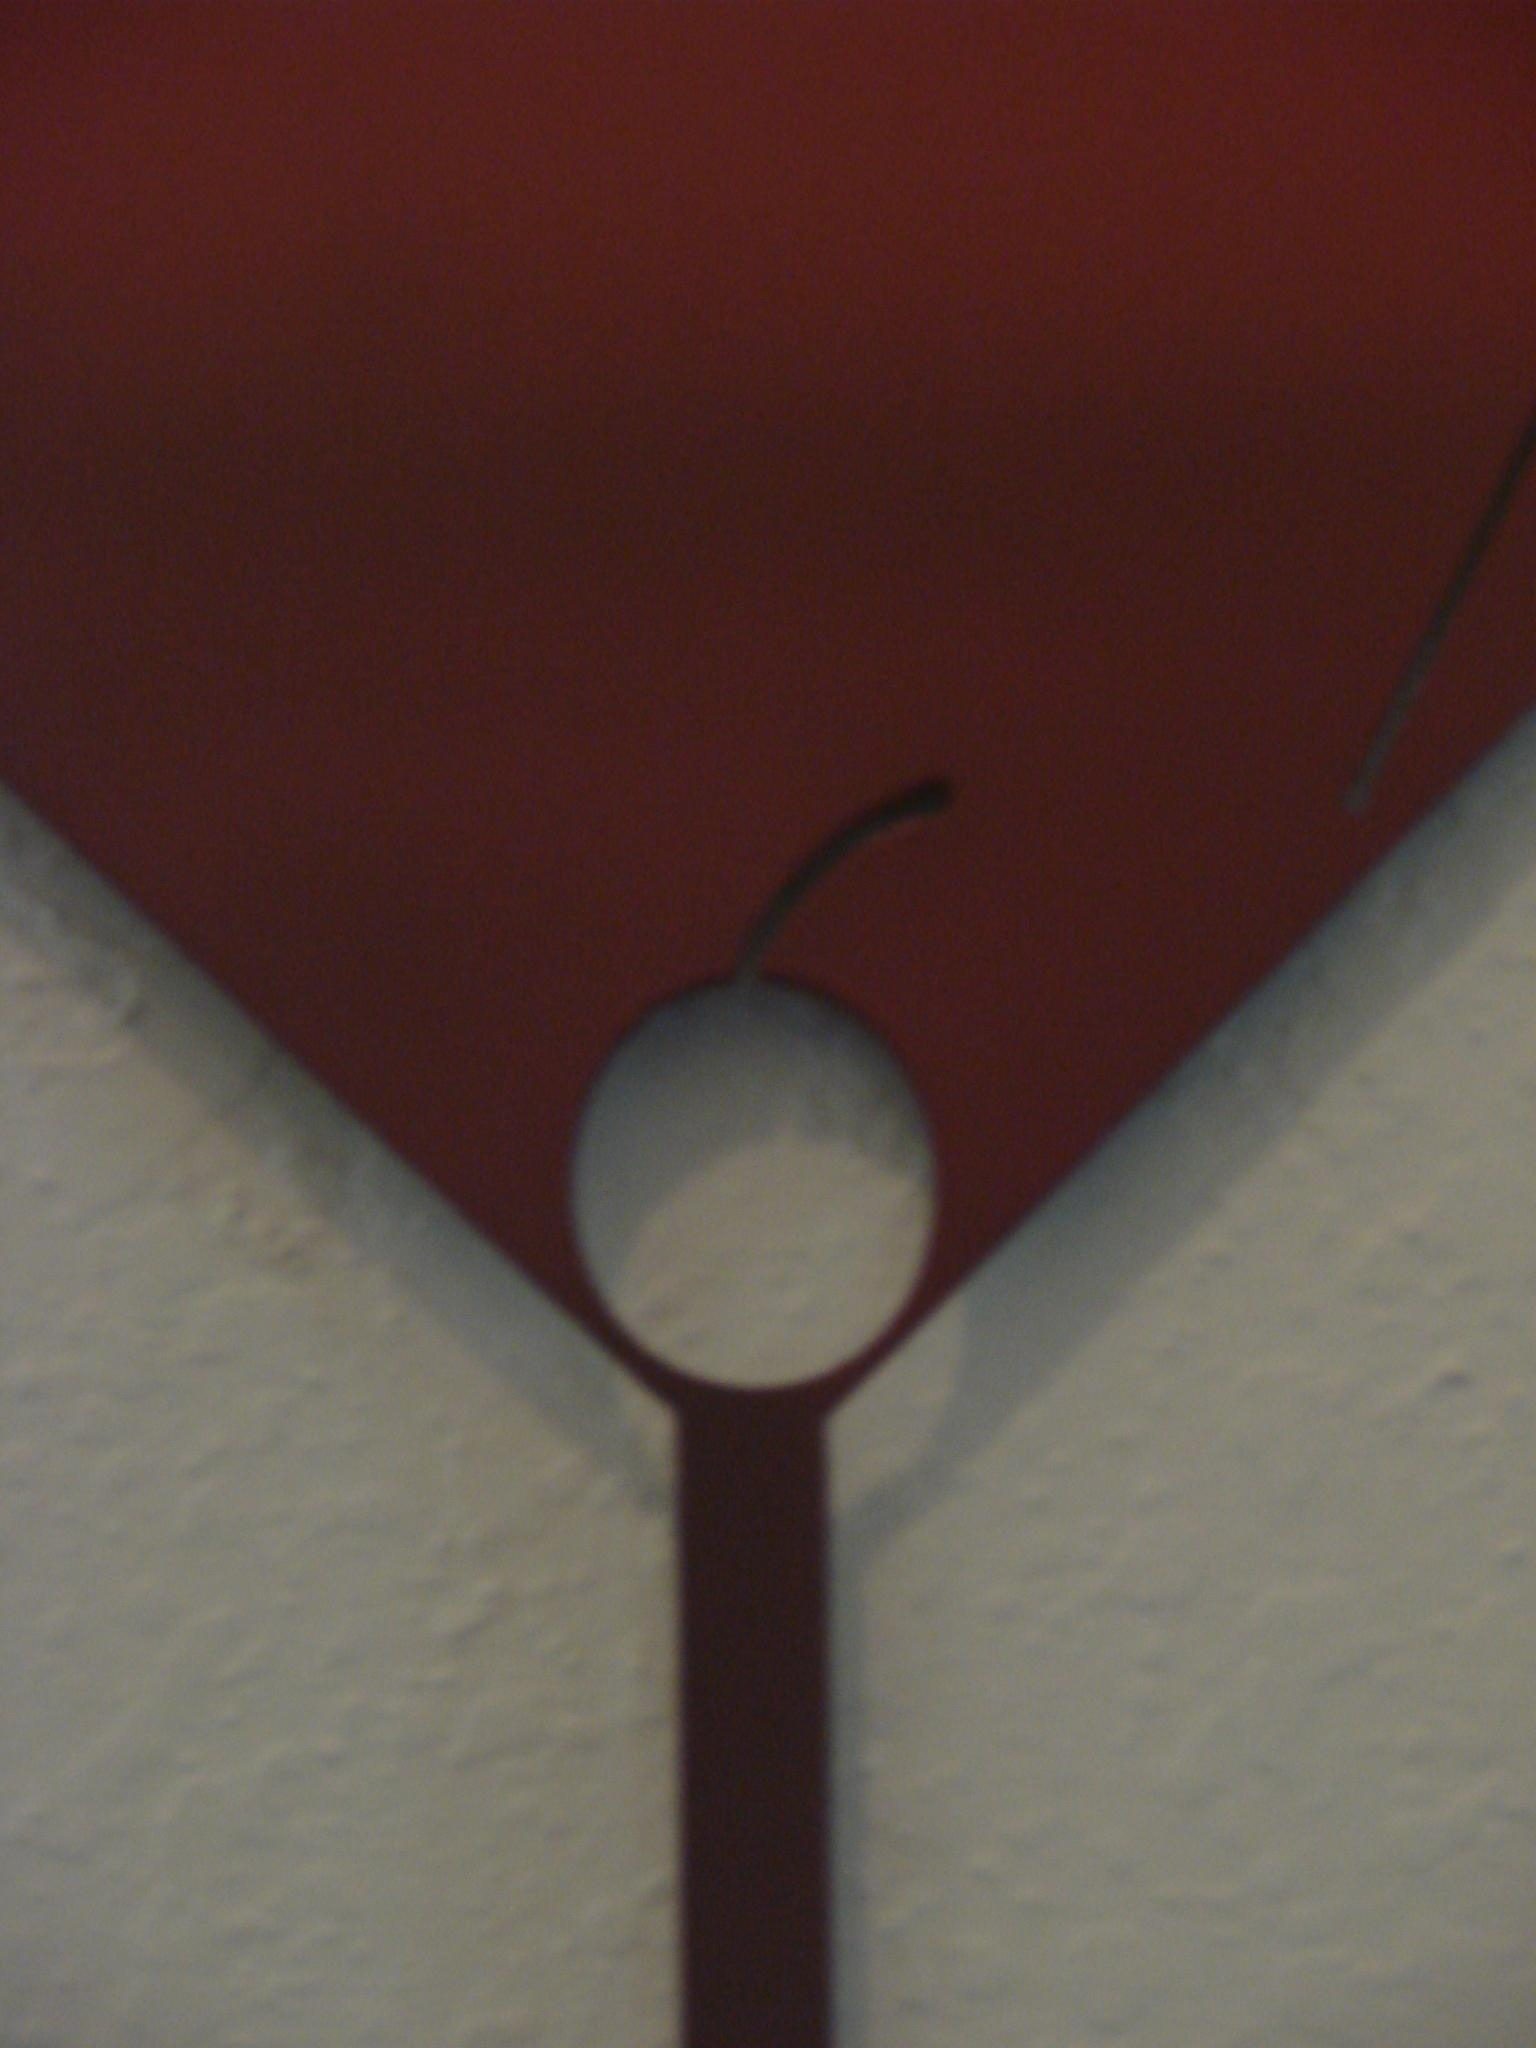 16 Gauge Ombre Red To Black Cosmopolitan Martini Glass Metal Wall Intended For Martini Metal Wall Art (View 13 of 20)